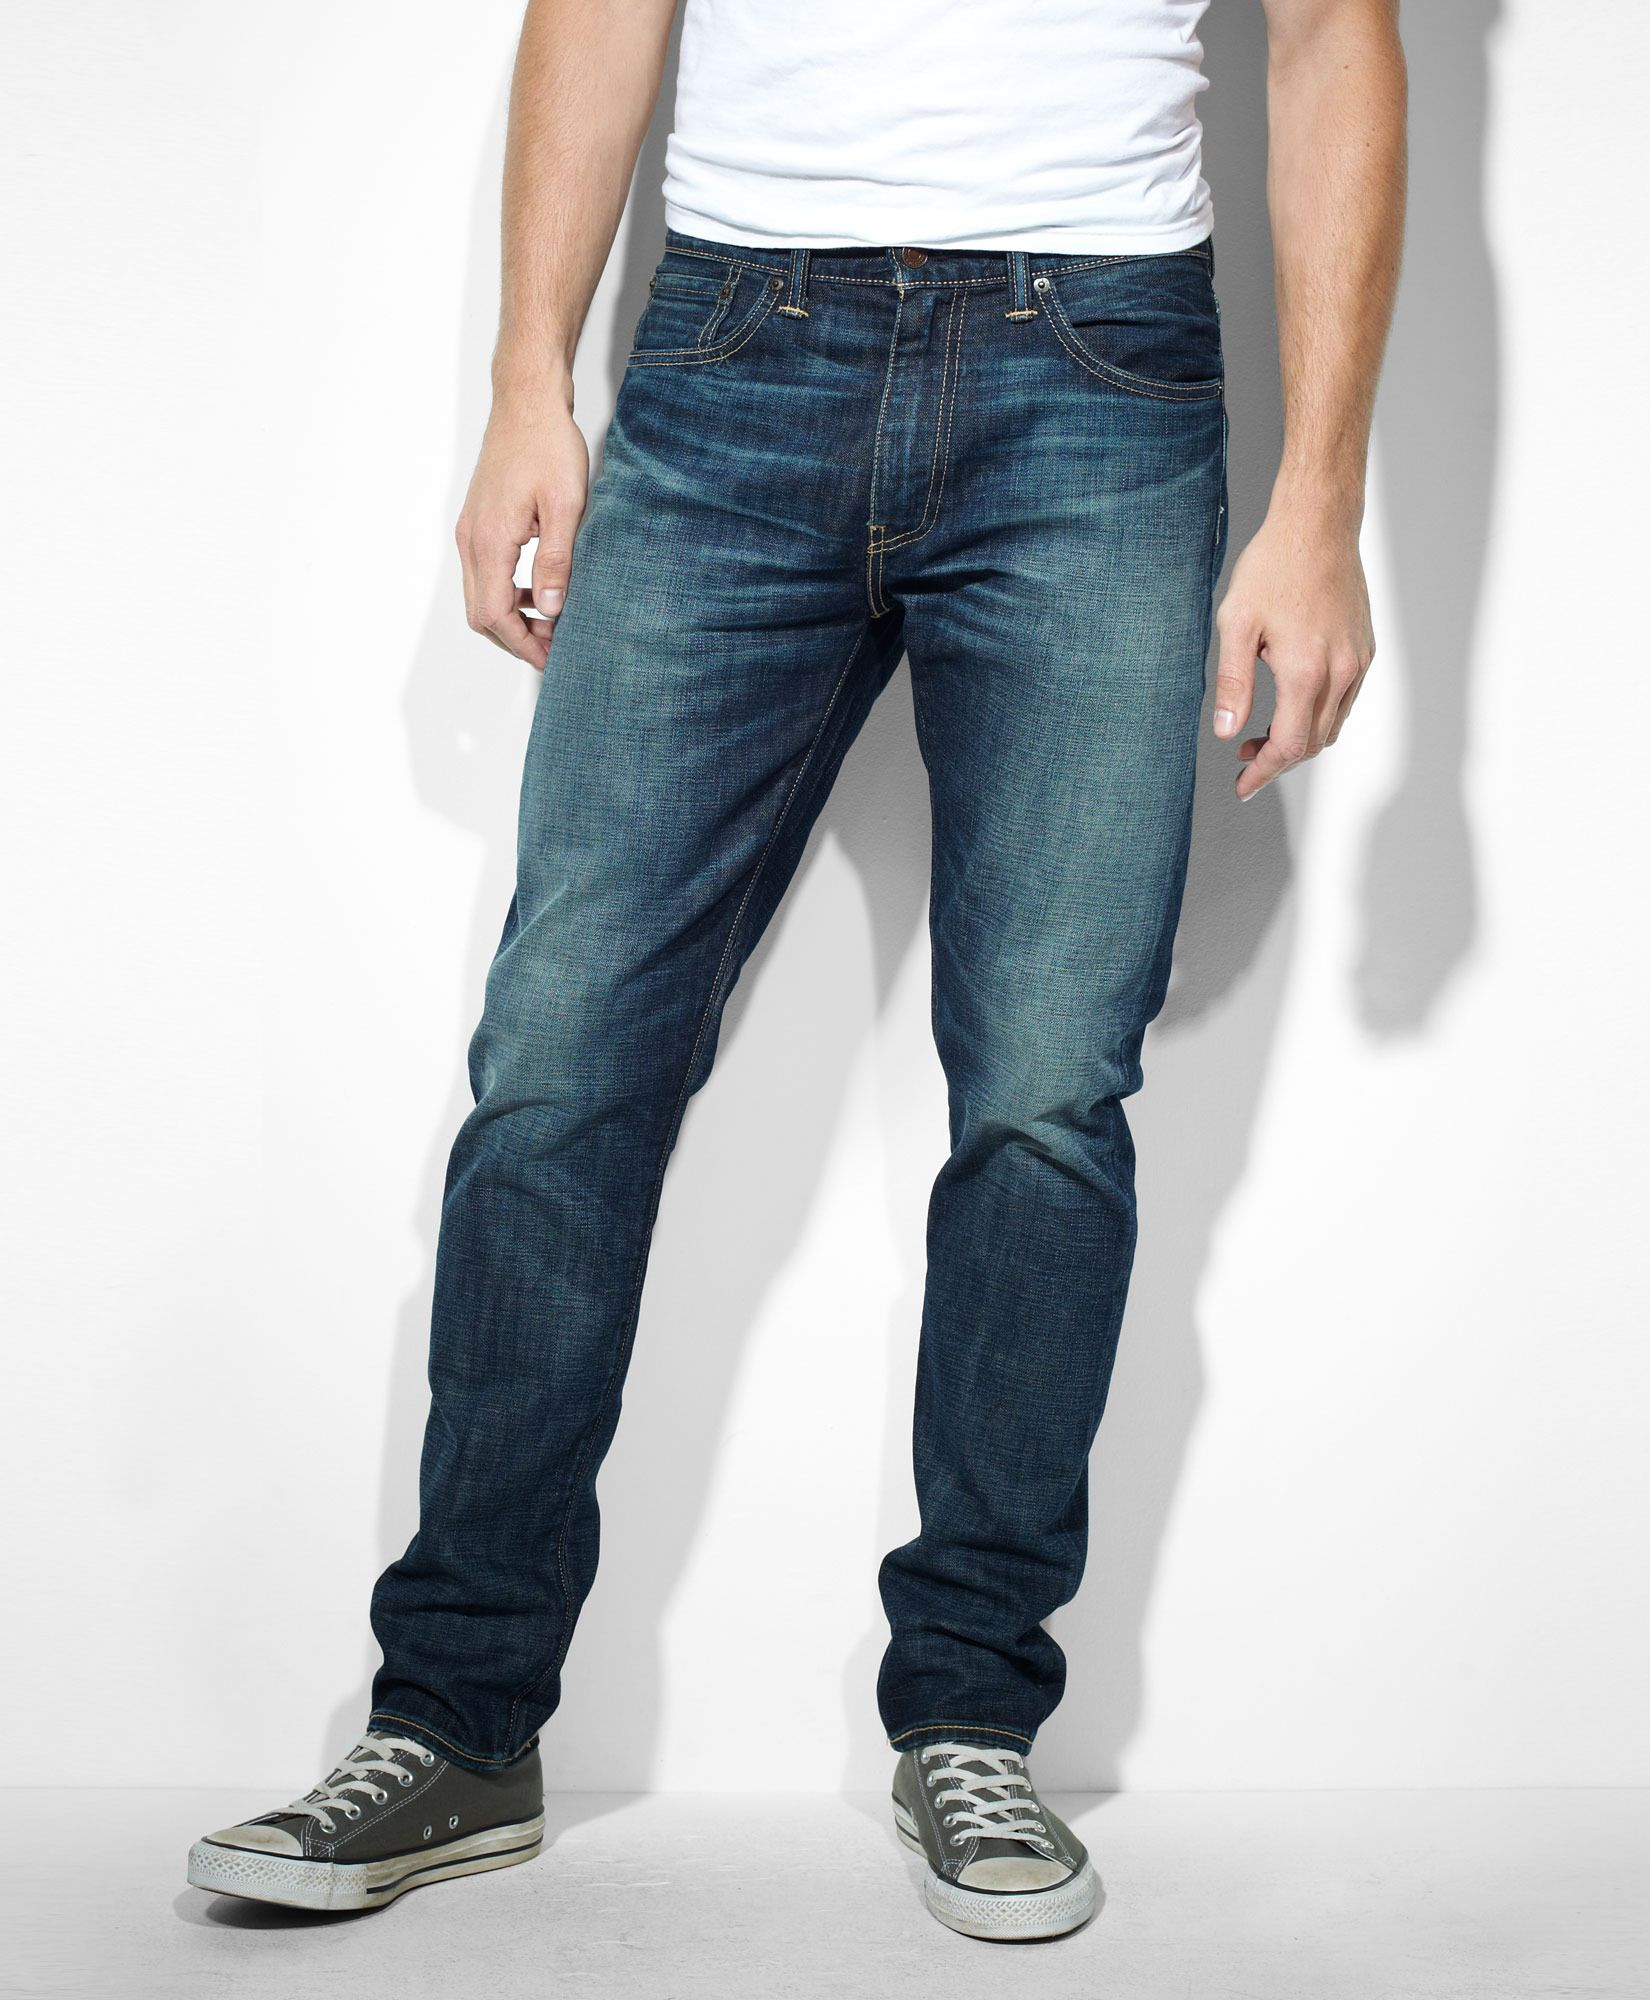 4f4902e7 Levi's 508™ Regular Taper Jeans - Quincy | S W A G | Tapered jeans ...